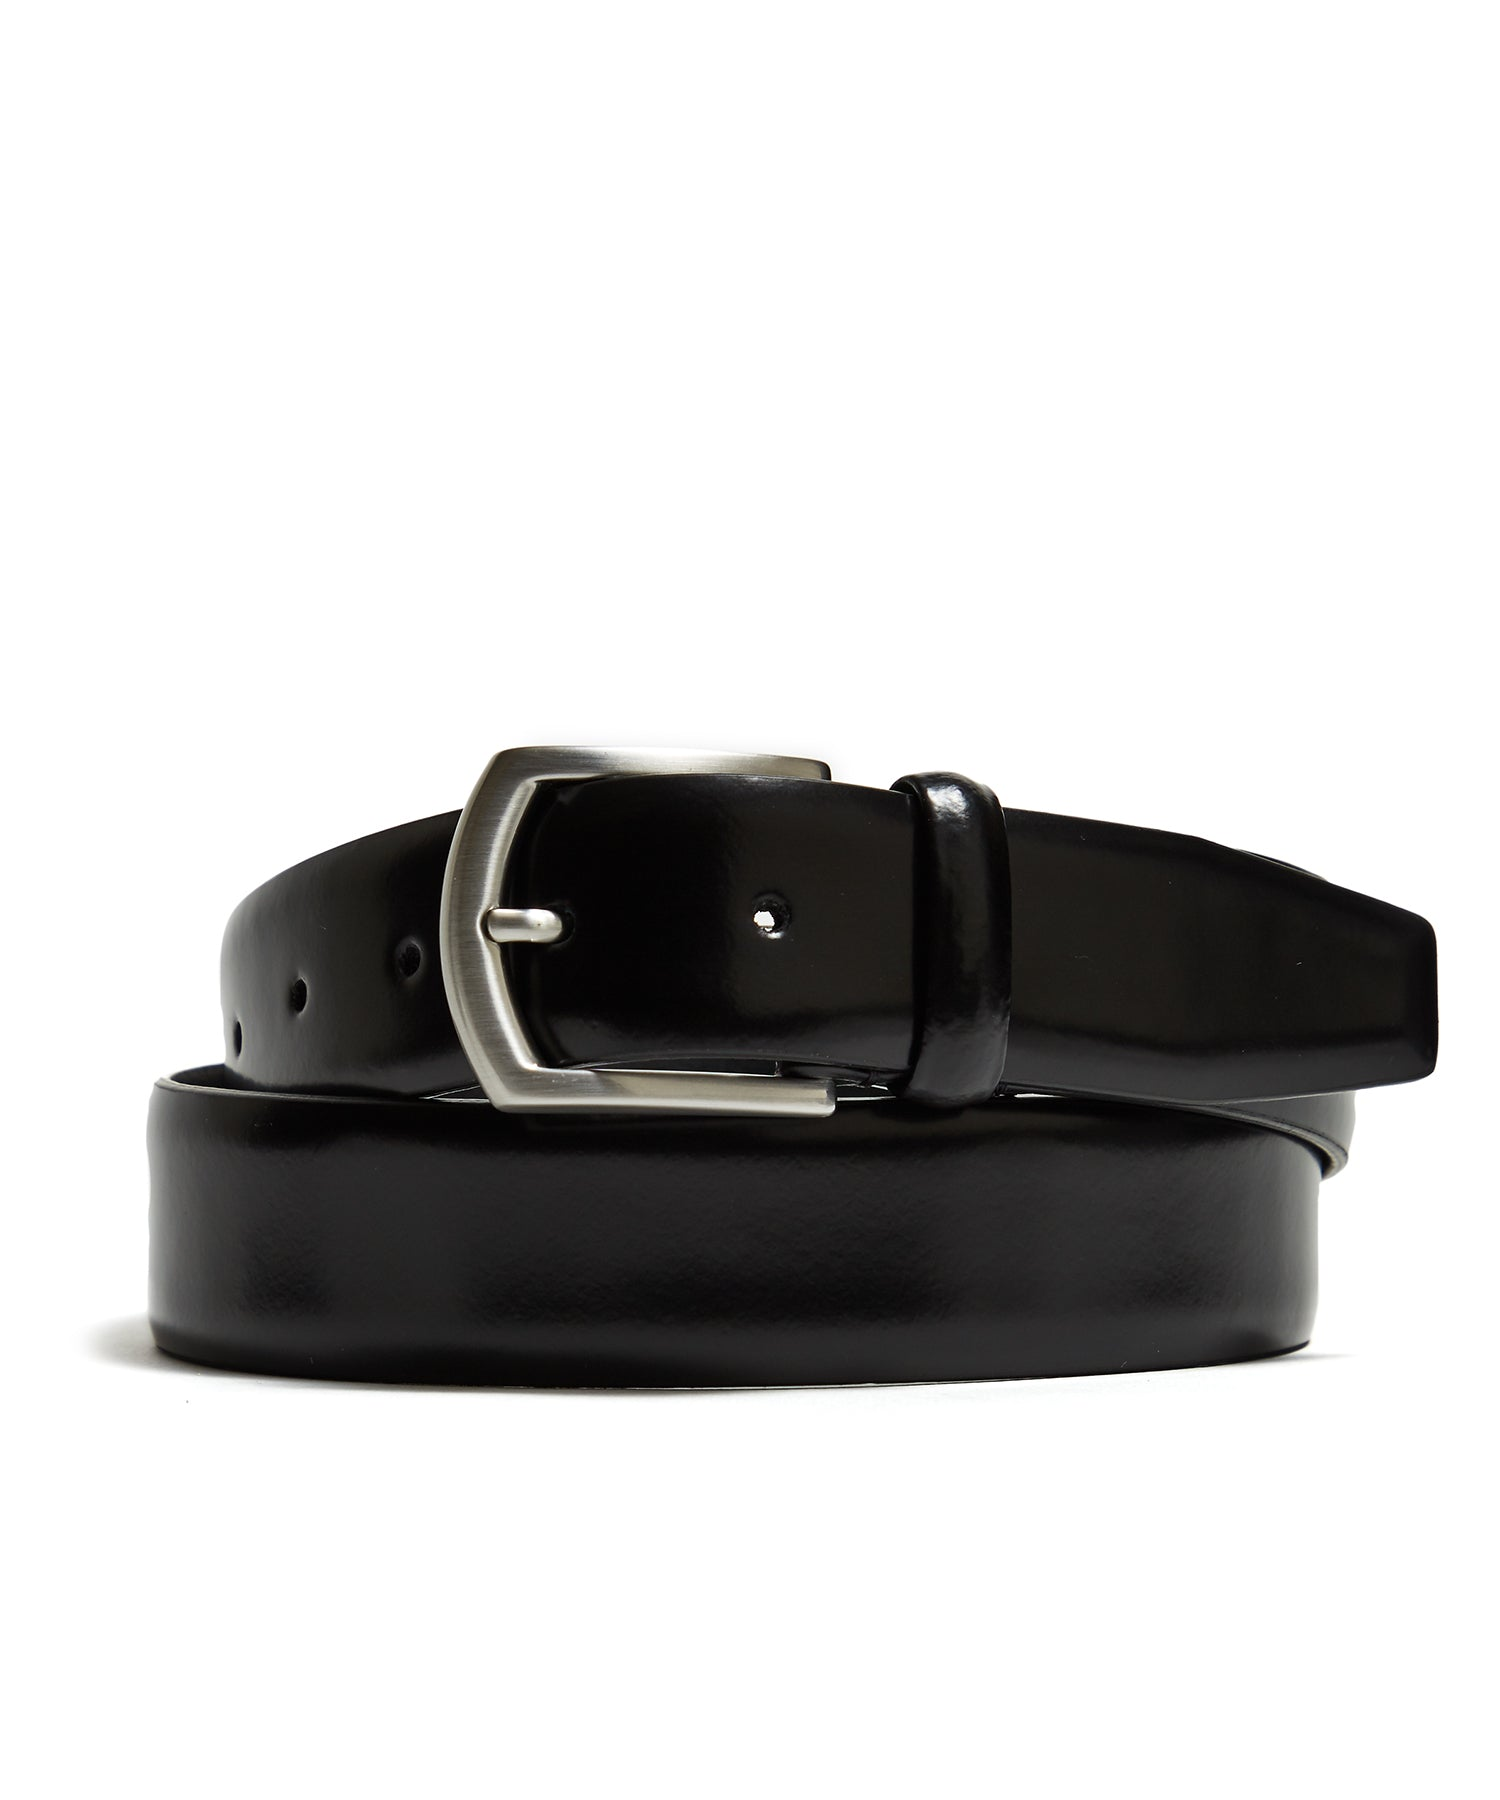 Anderson's Dress Leather Belt in Black